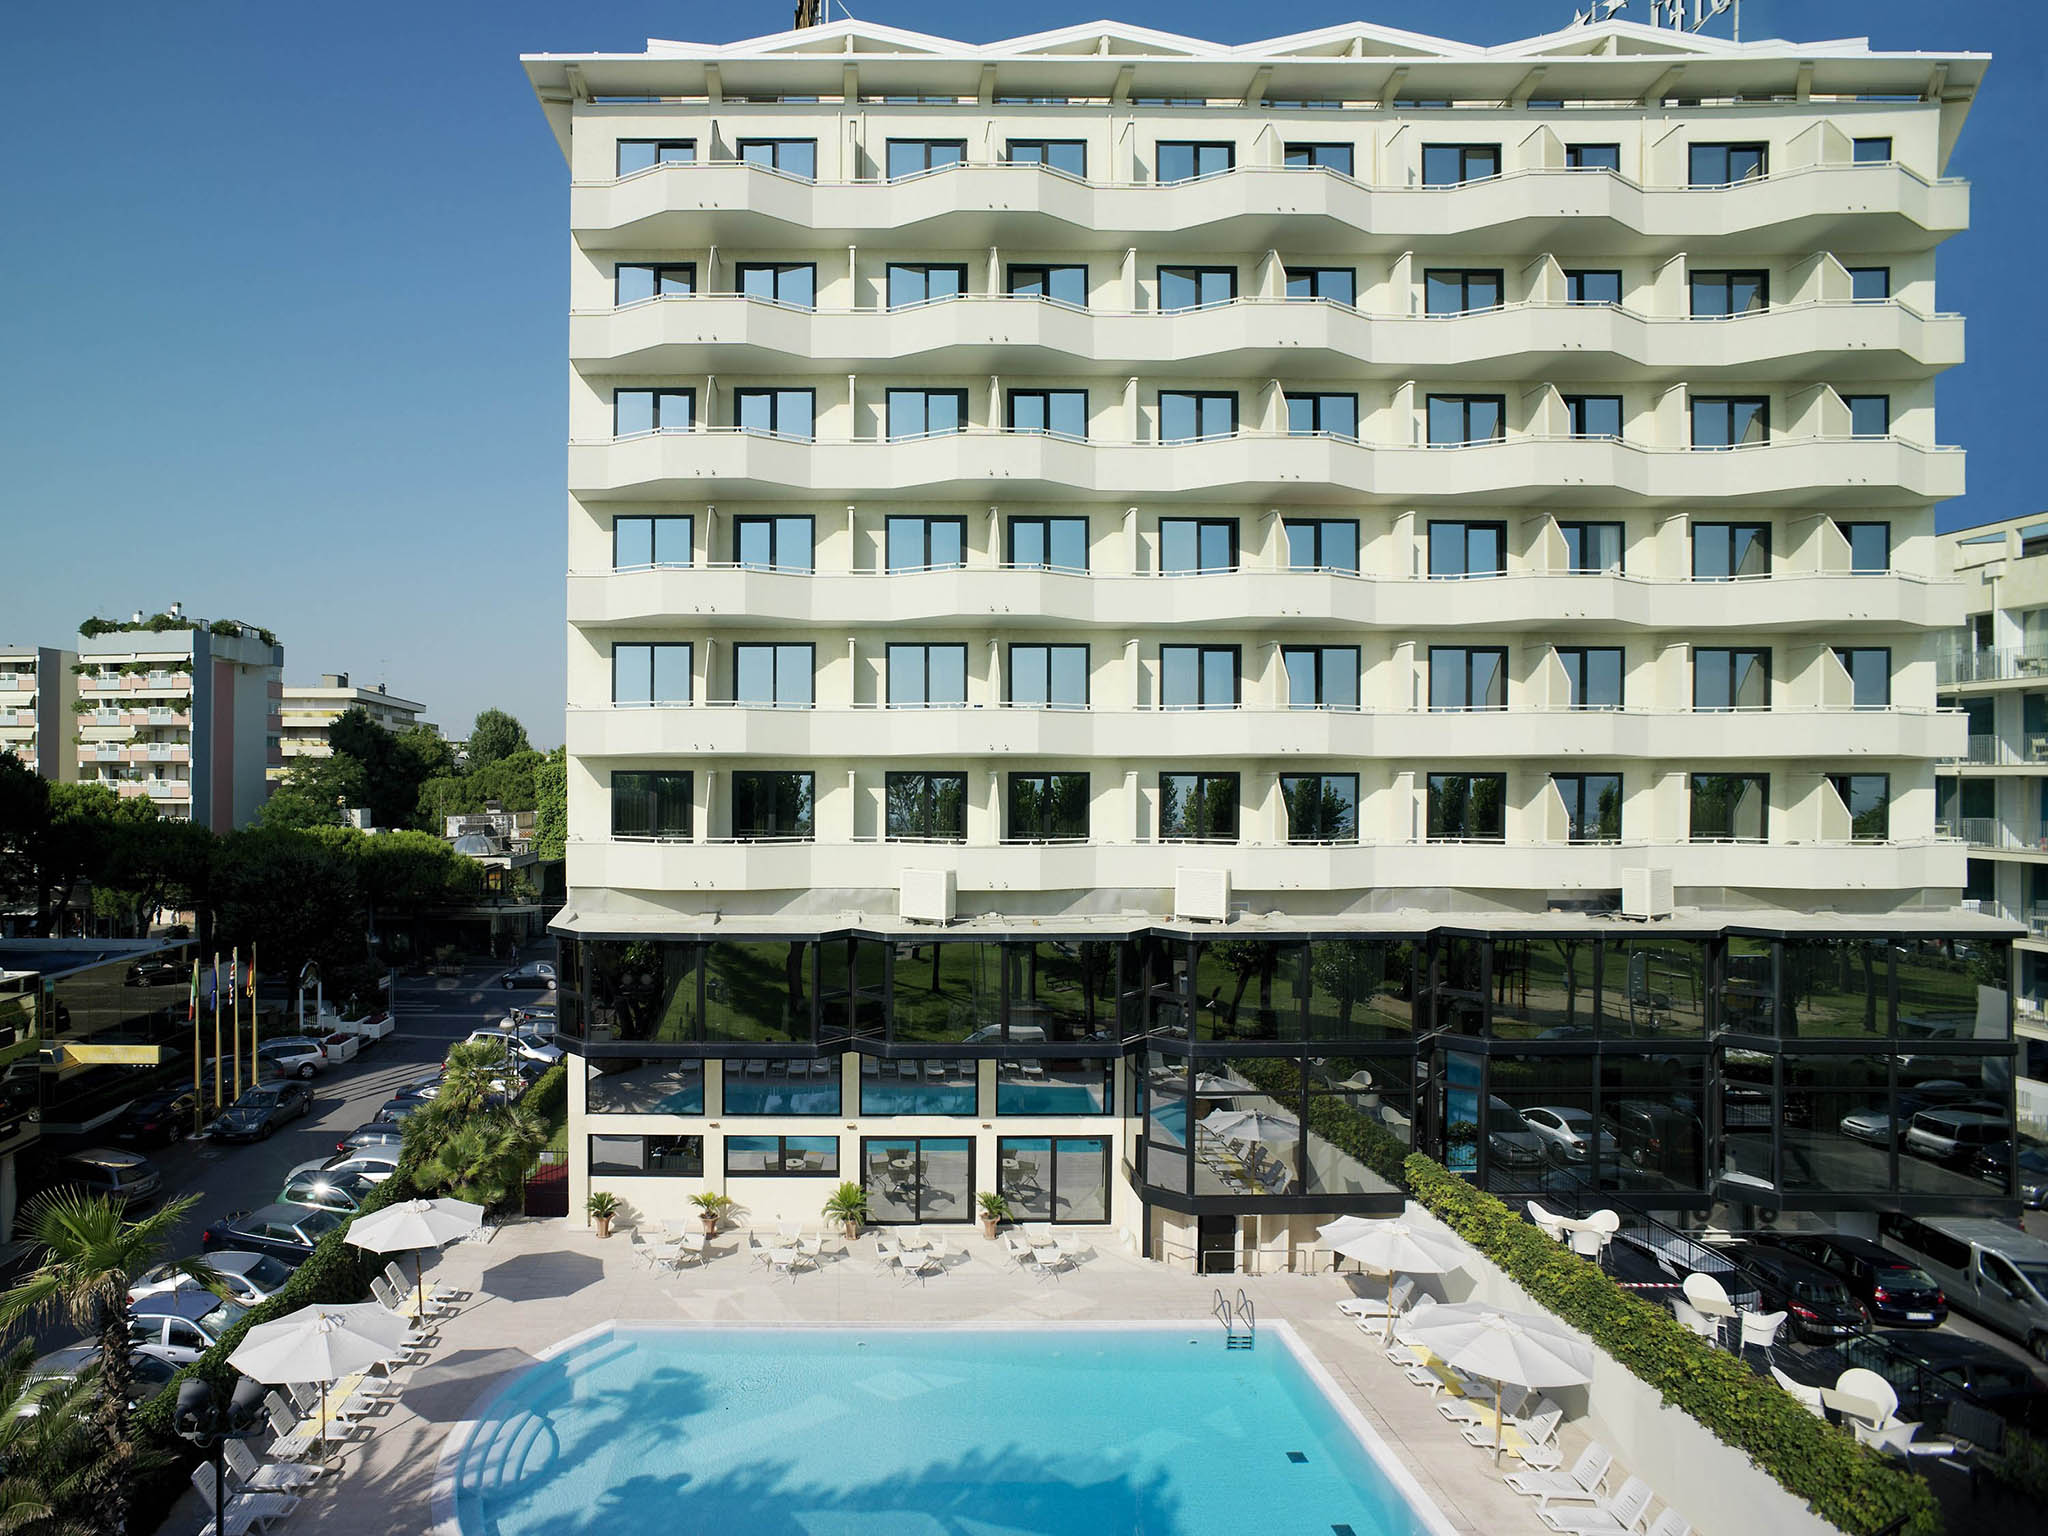 hotel stockolm rimini - photo#19